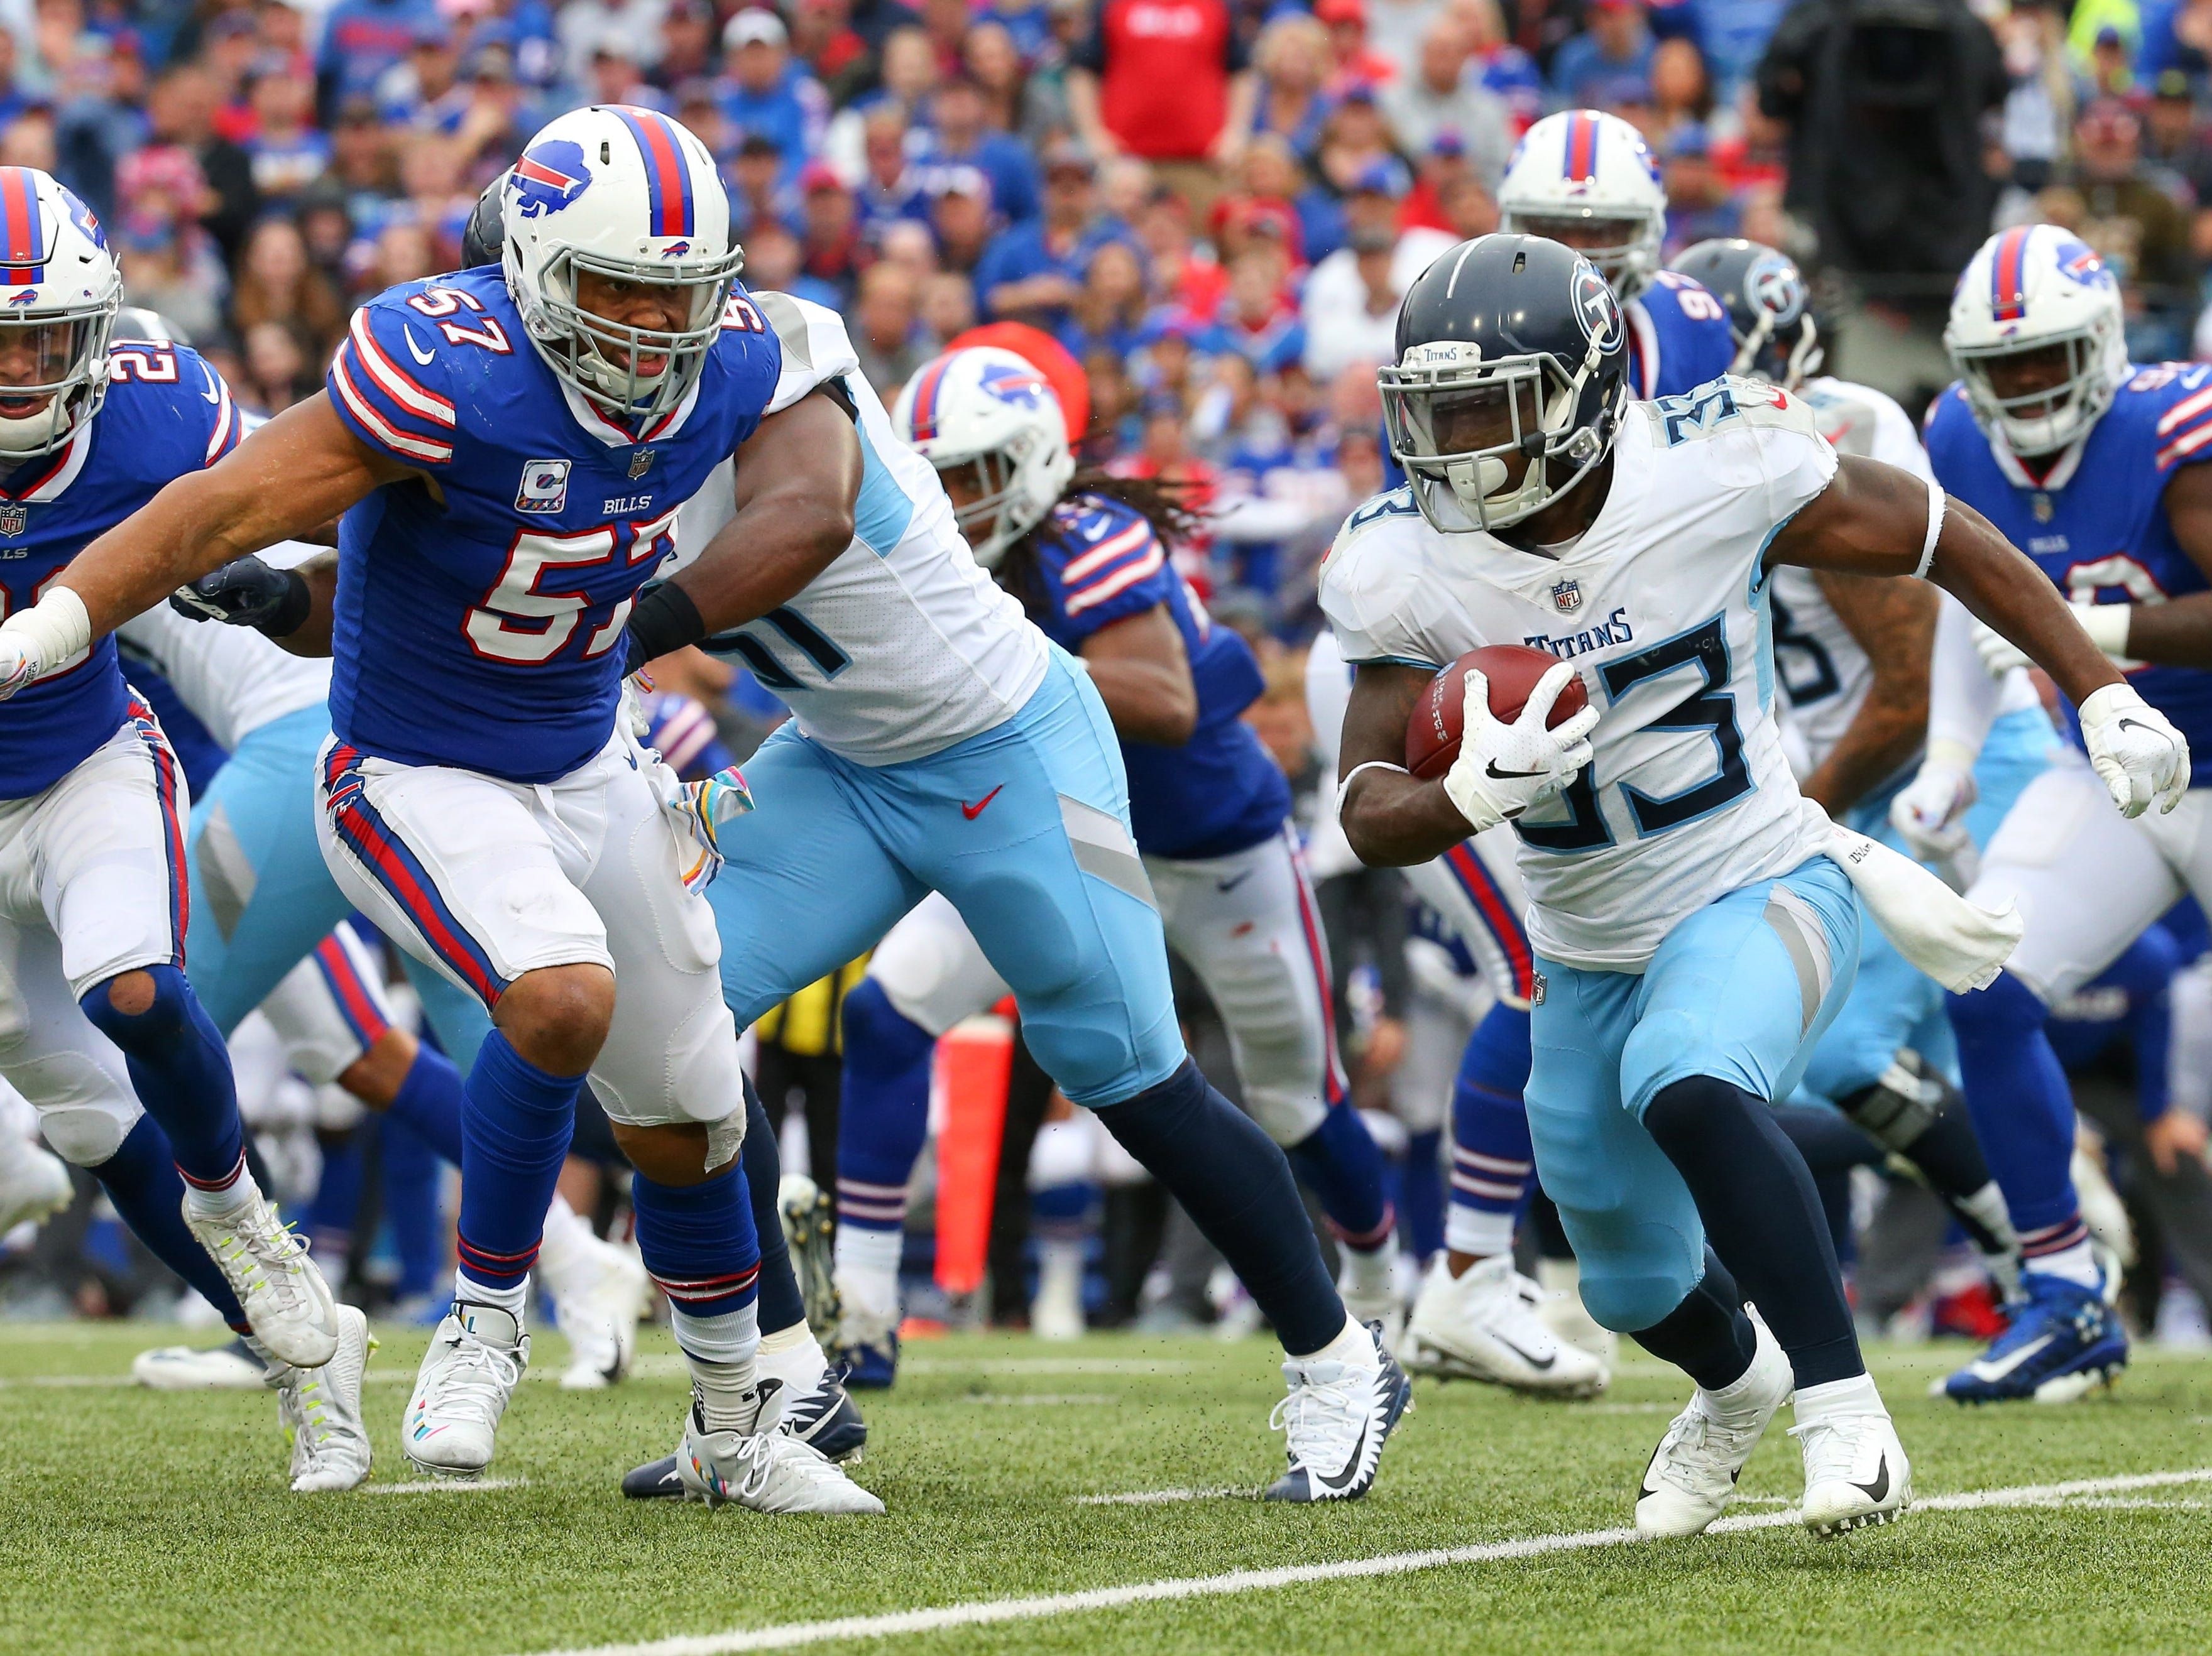 Oct 7, 2018; Orchard Park, NY, USA; Tennessee Titans running back Dion Lewis (33) runs with the ball against Buffalo Bills linebacker Lorenzo Alexander (57) during the third quarter at New Era Field.